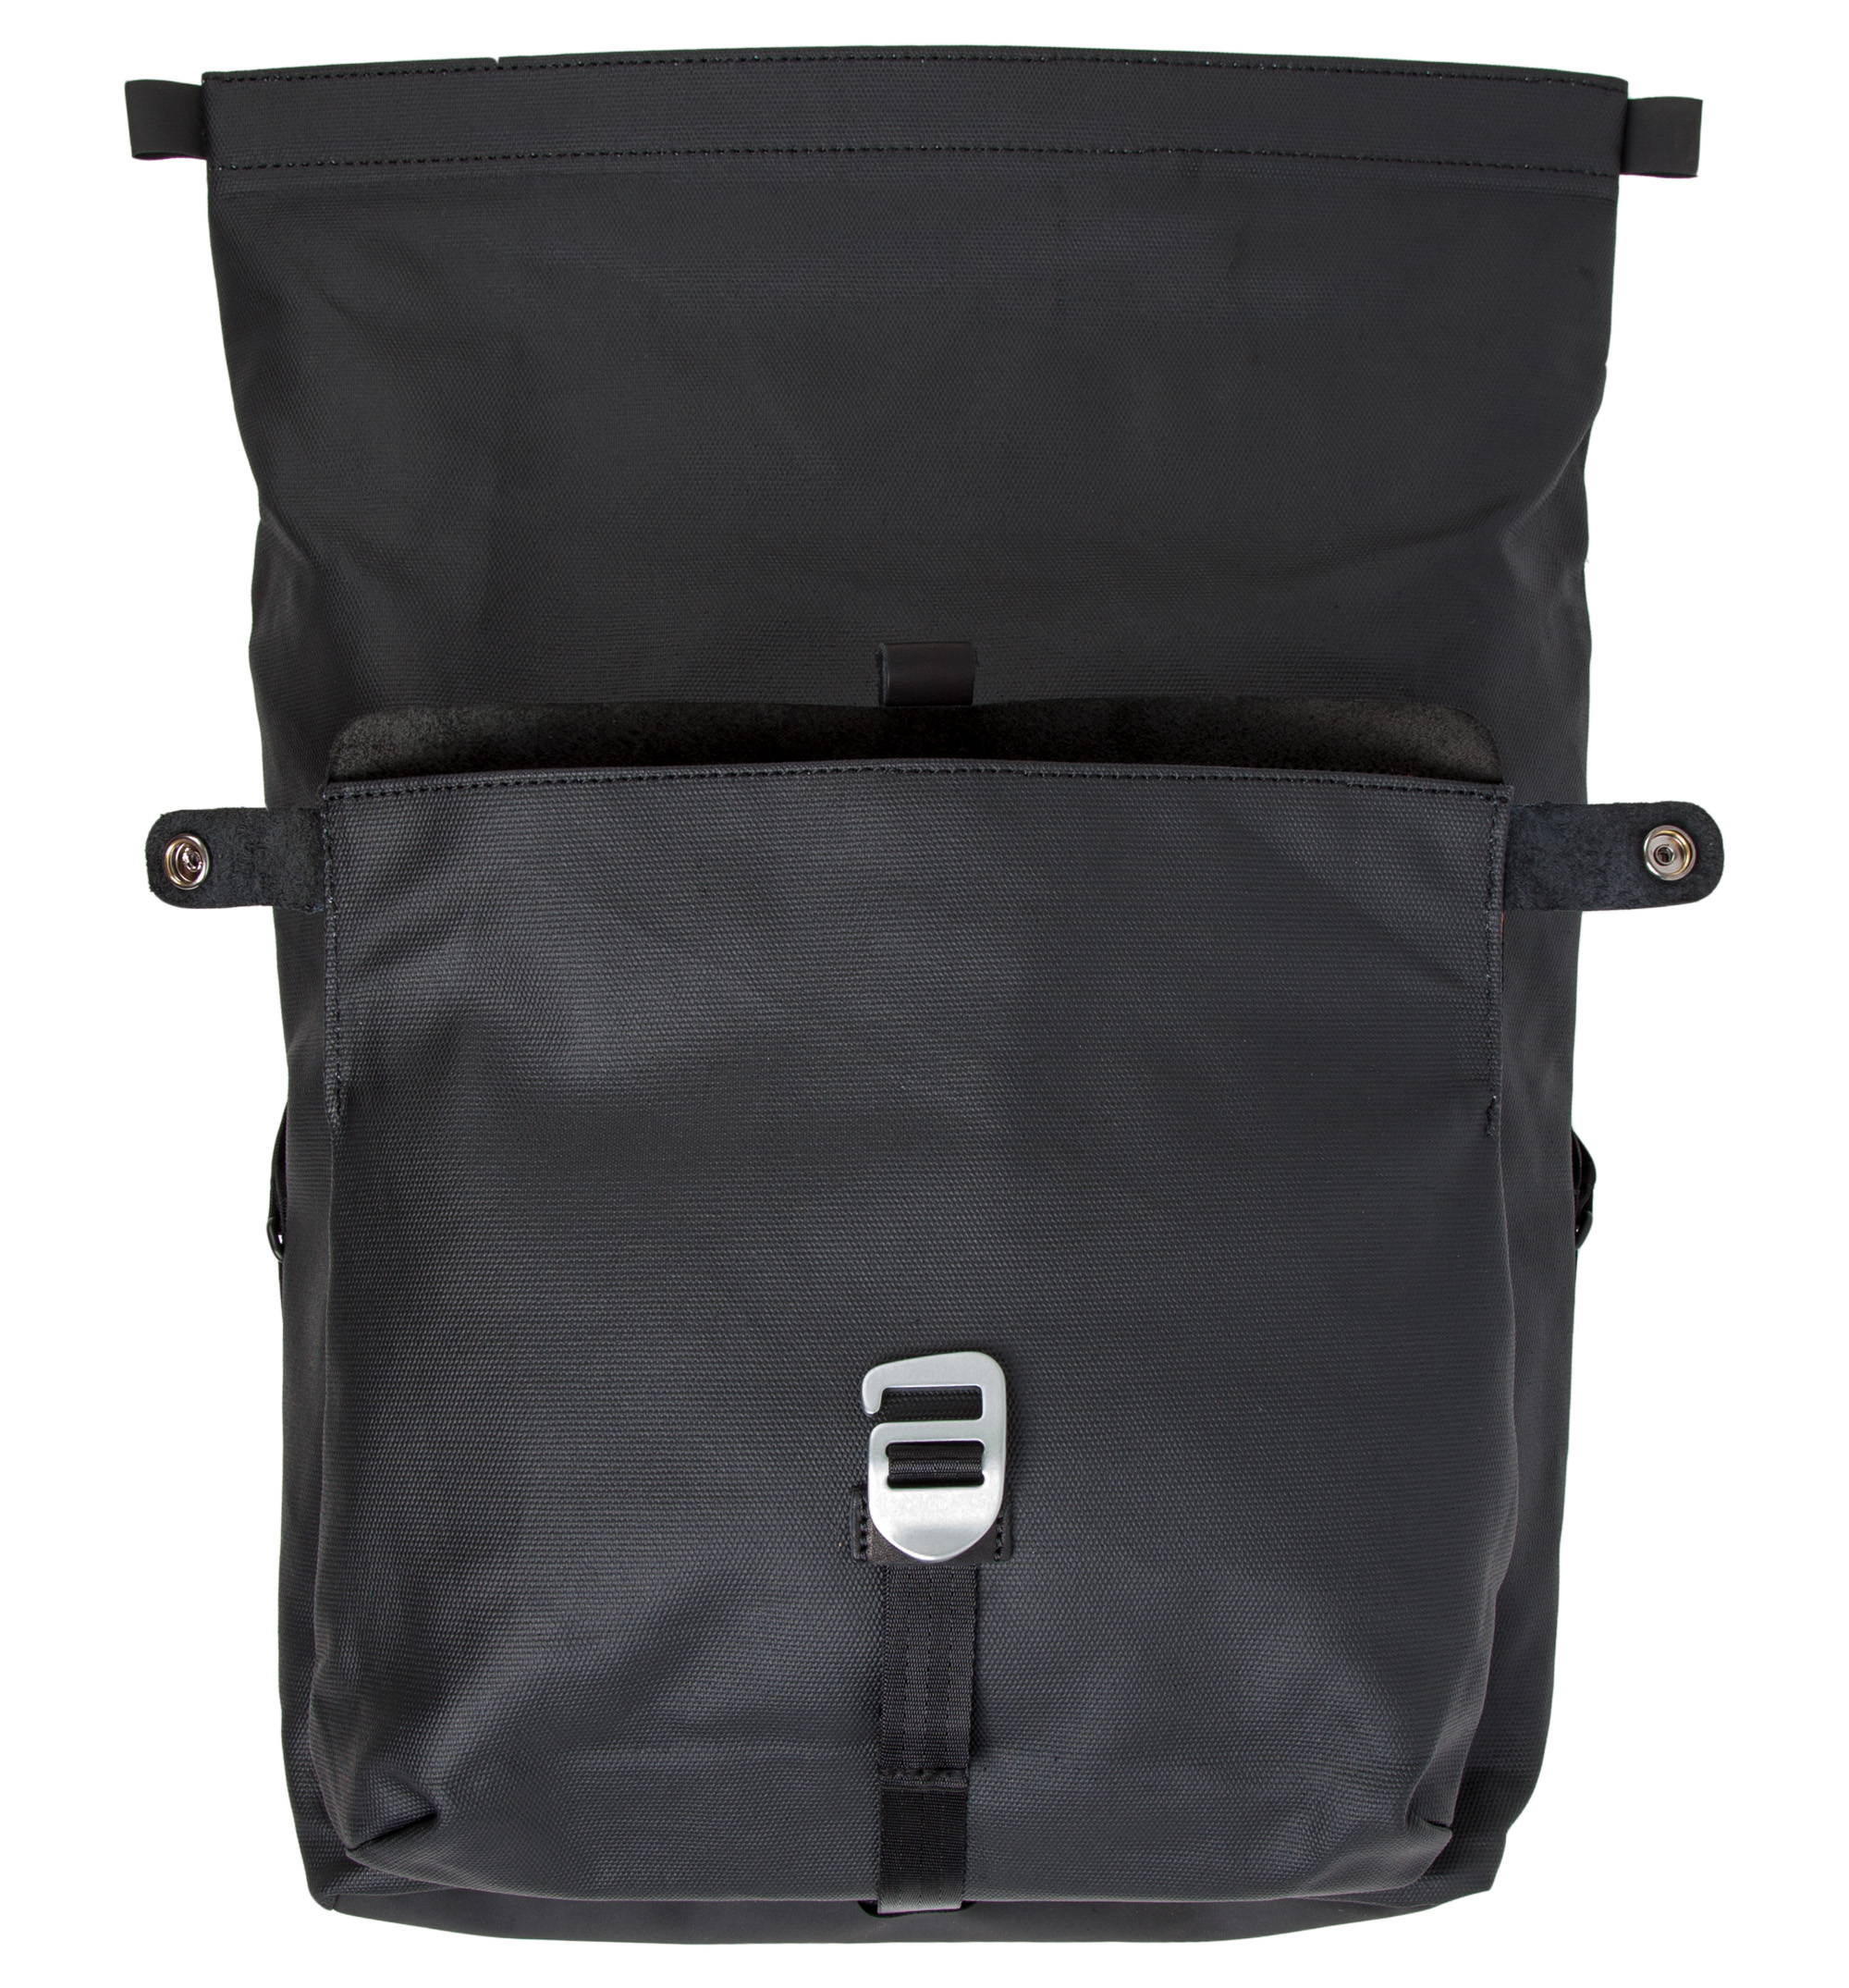 Iron & Resin Motorcycle Pannier Bag - Available In Black - Front of Bag